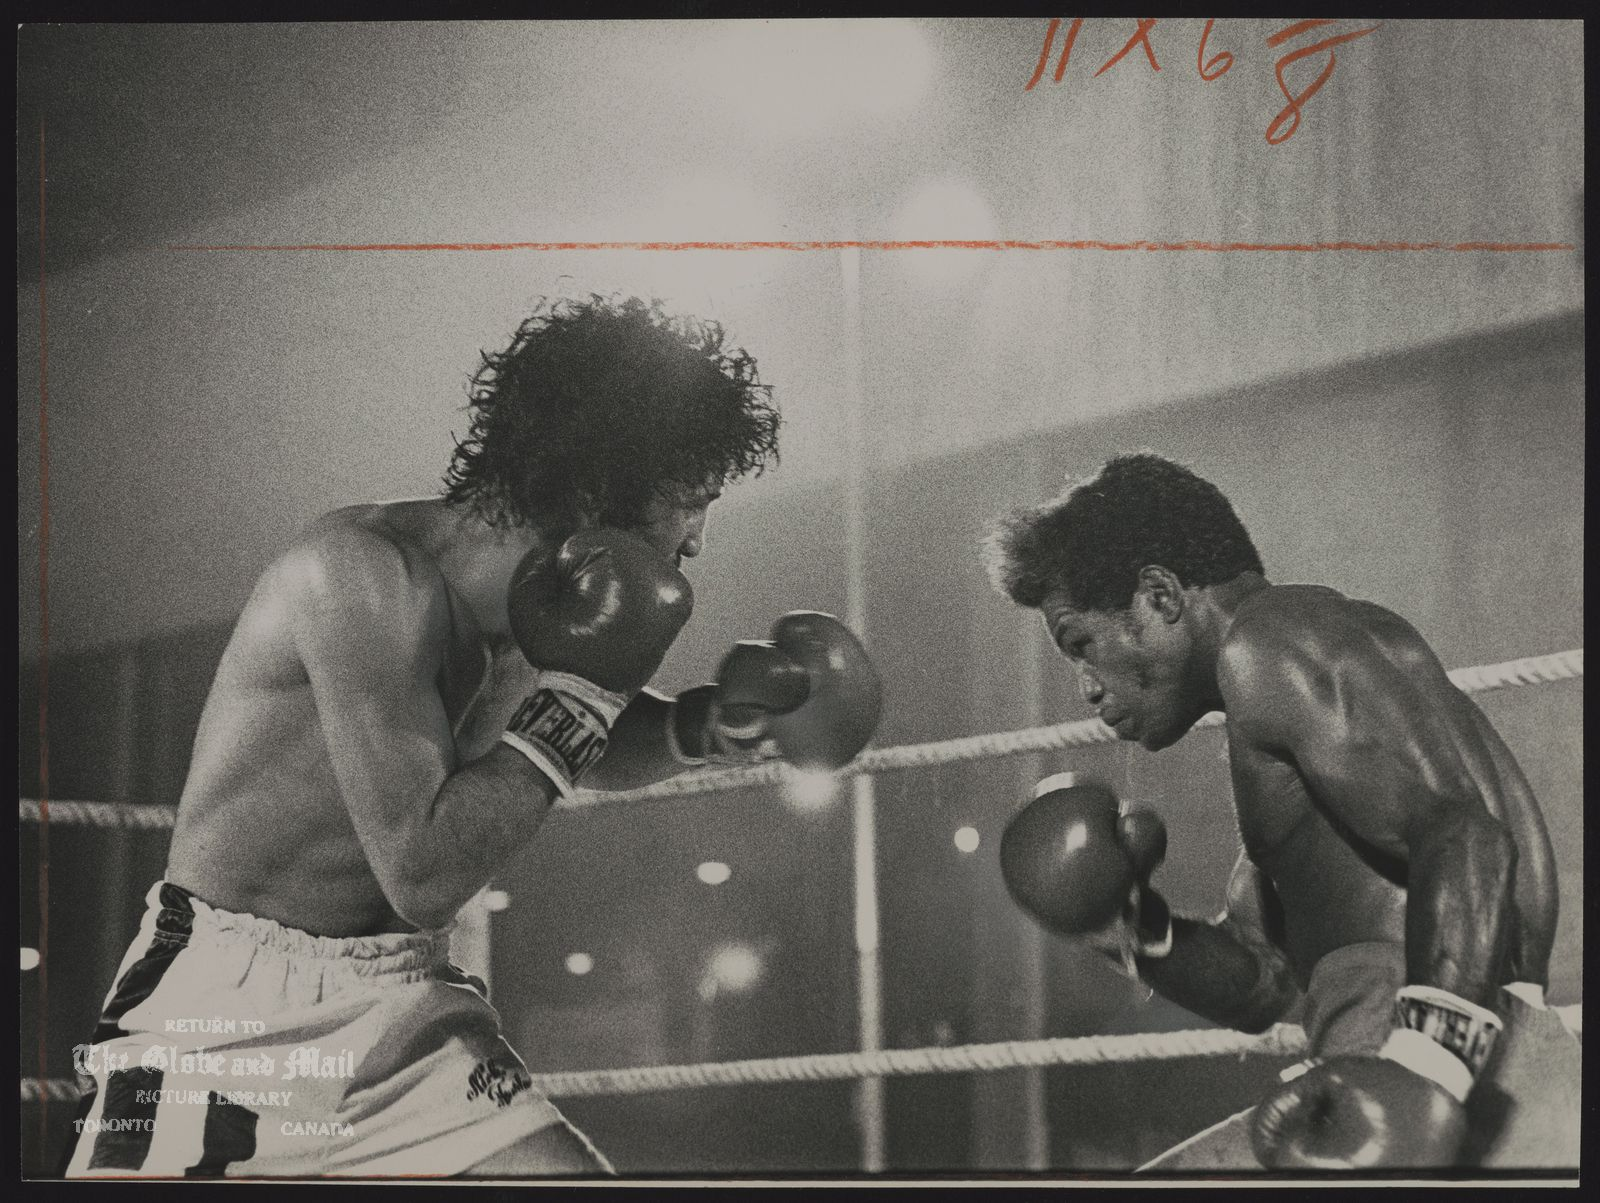 Nicky FURLANO Toronto. Boxer Nicky aiming a left jab at Franklin: for the rest of the fight, Franklin's best weapon will be irony, mocking the young prospect, the hometown crowd, the referee, the whole fight game.